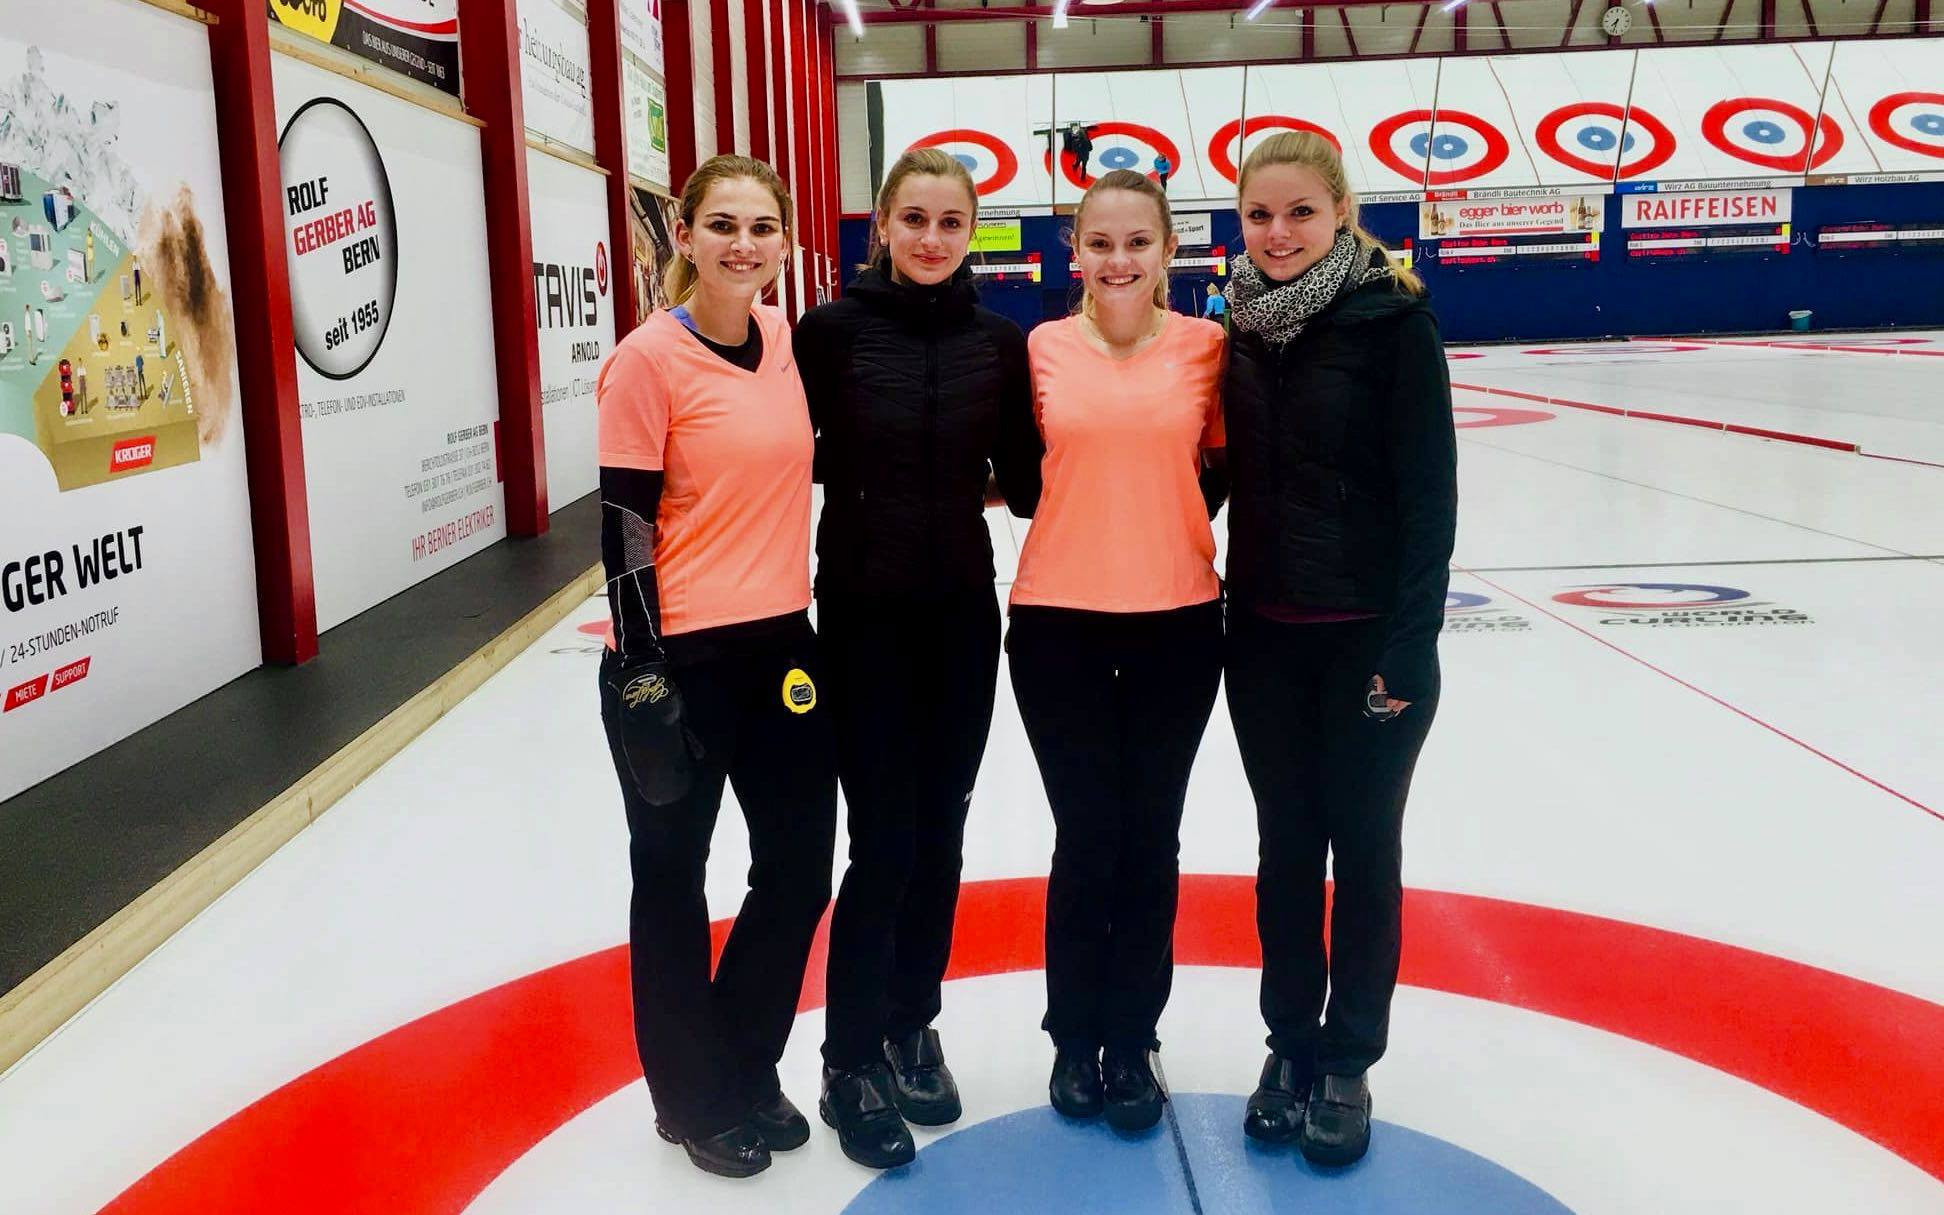 There is a lot of expectation on the Swiss women's curling team ©Swiss University Sports/Facebook